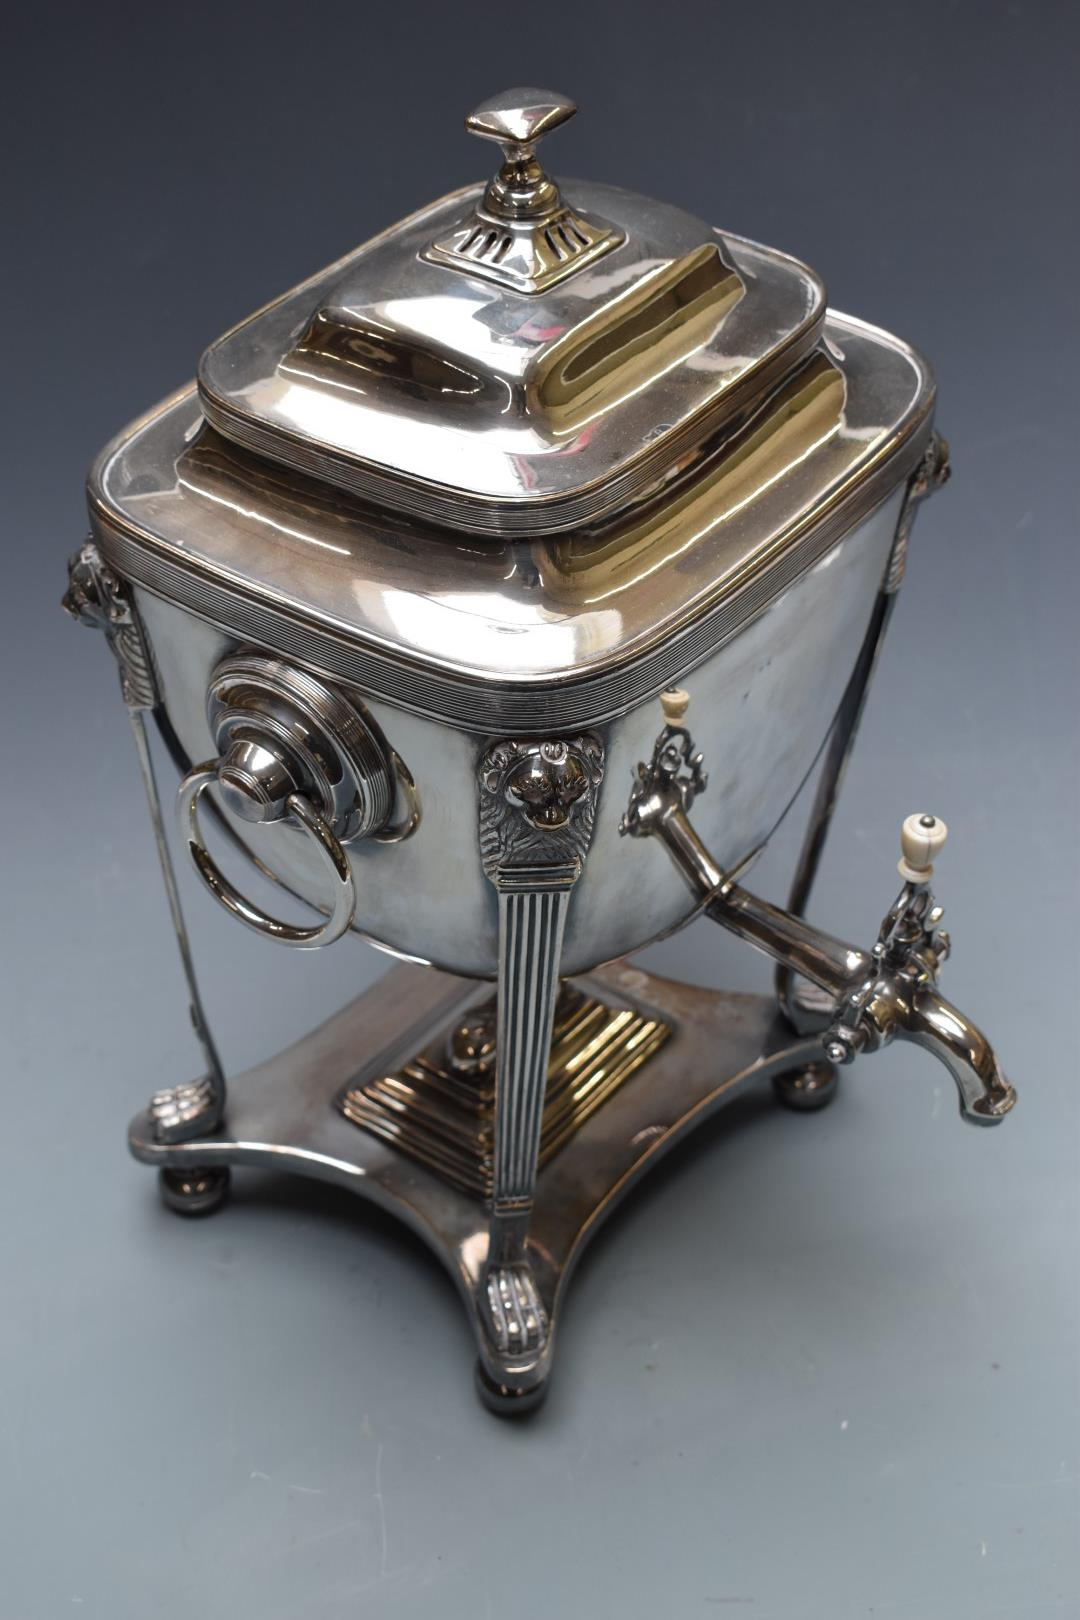 19thC silver plated samovar of classical form, with lions mask and paw supports, H41cm - Image 2 of 4